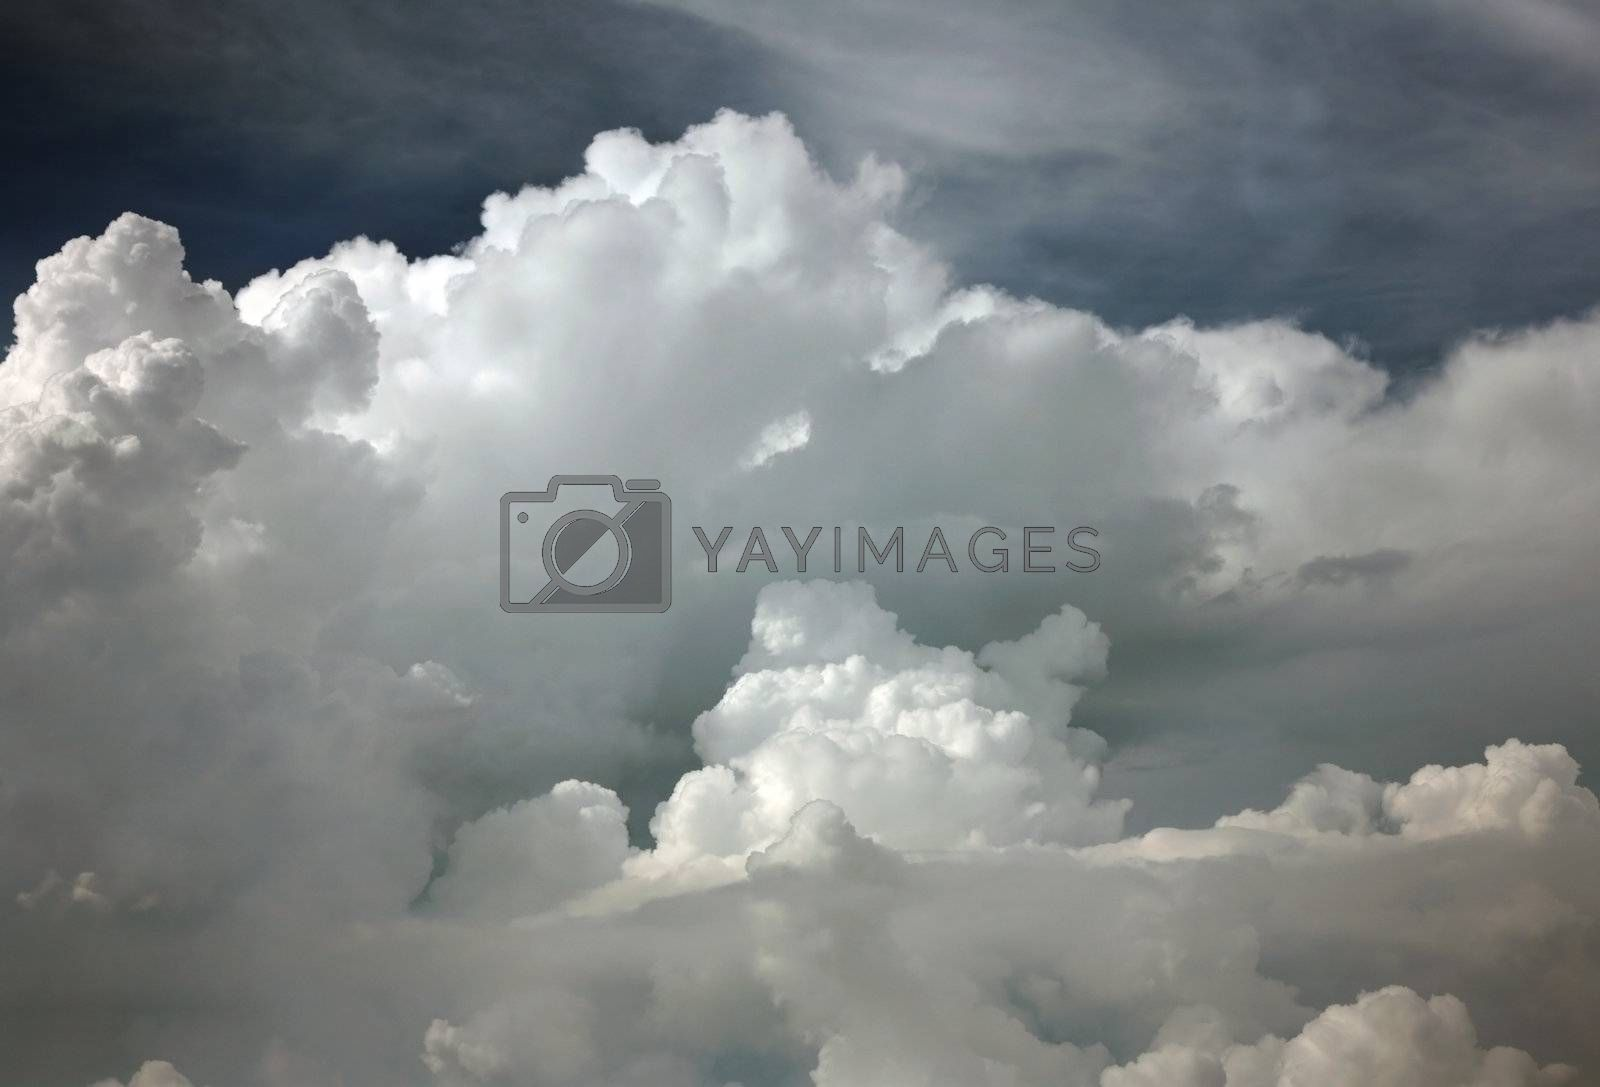 Clouds before a thunder-storm. A view from a window of the plane